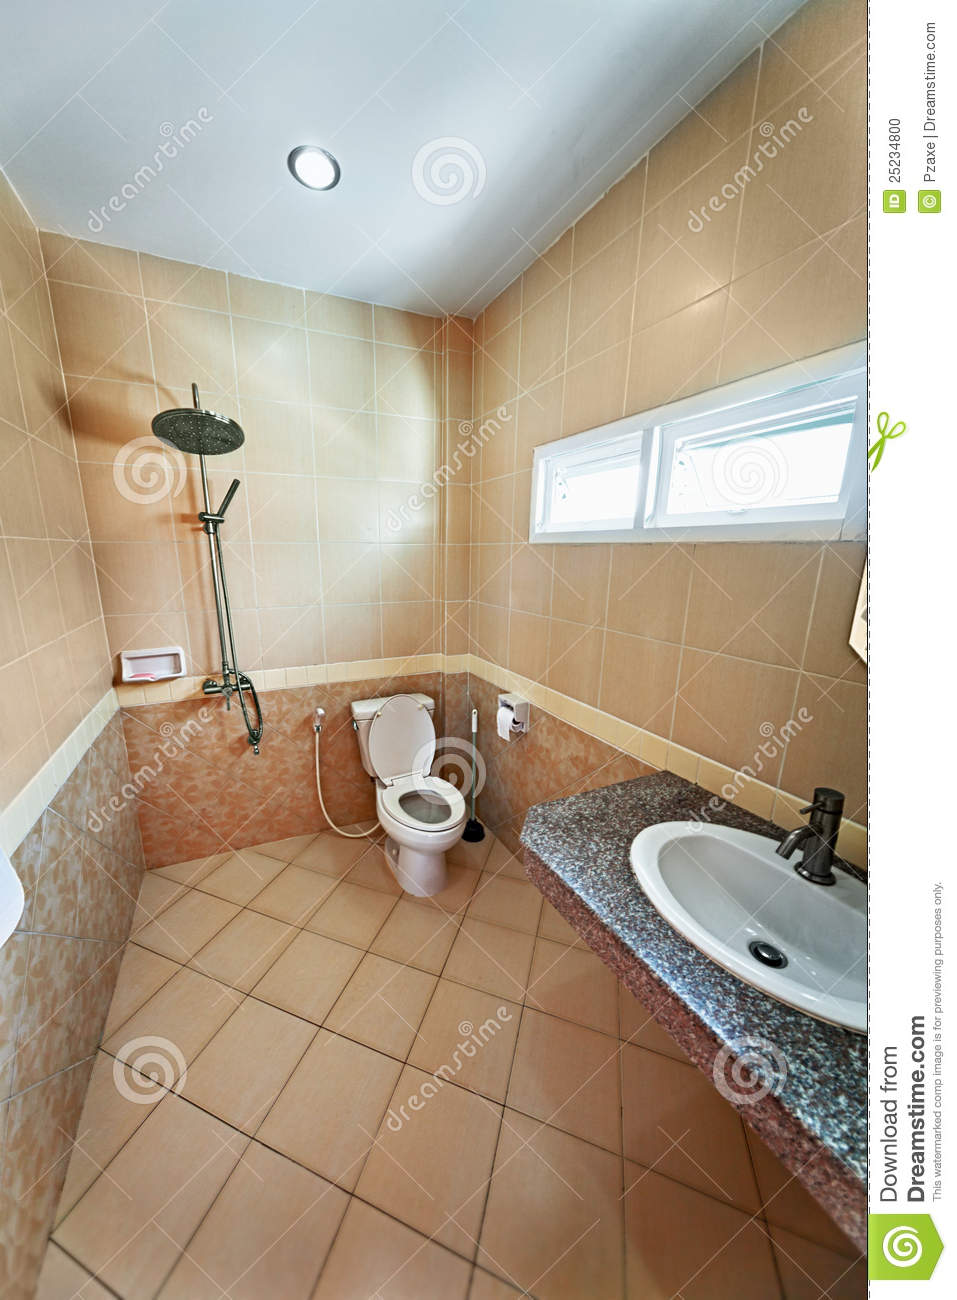 iinterior of beige bathroom with shower stock photo image 25234800. Black Bedroom Furniture Sets. Home Design Ideas